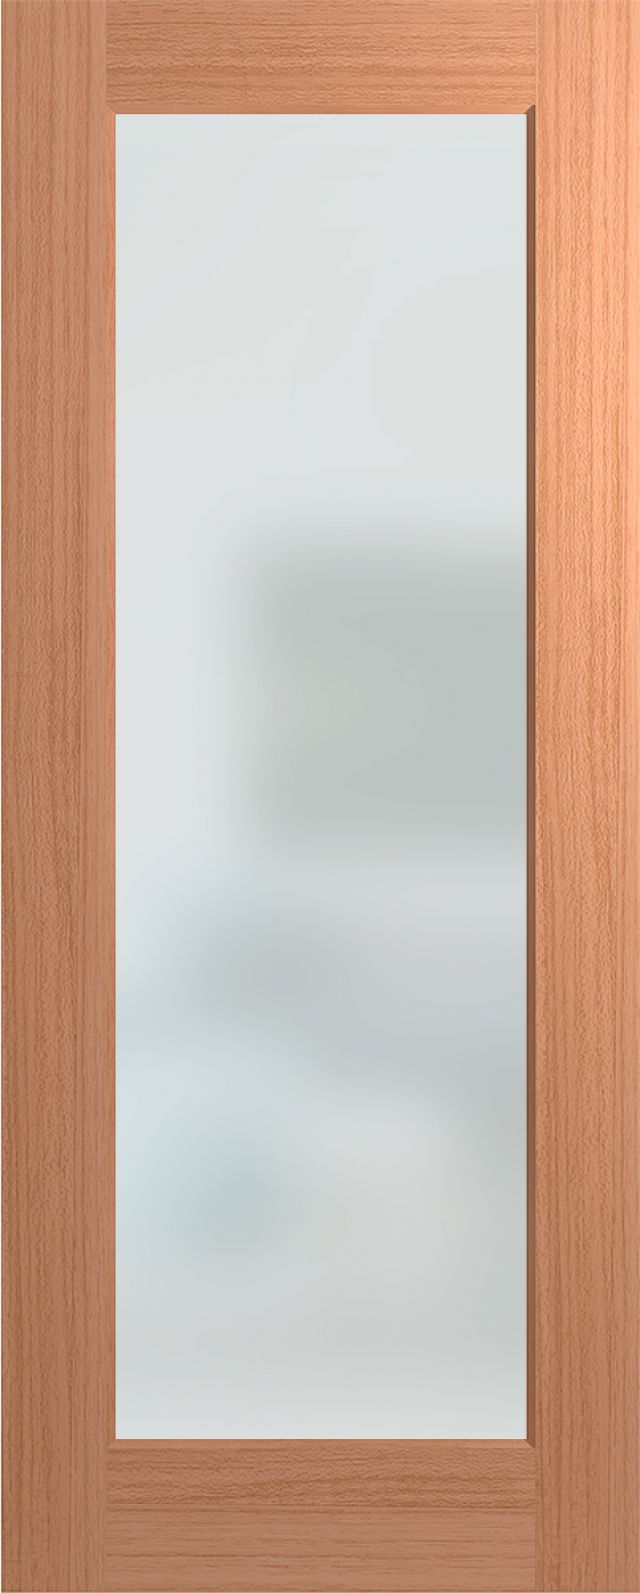 JST1 | Joinery Entrance | Hume Doors Entry Doors With Clear Gl on